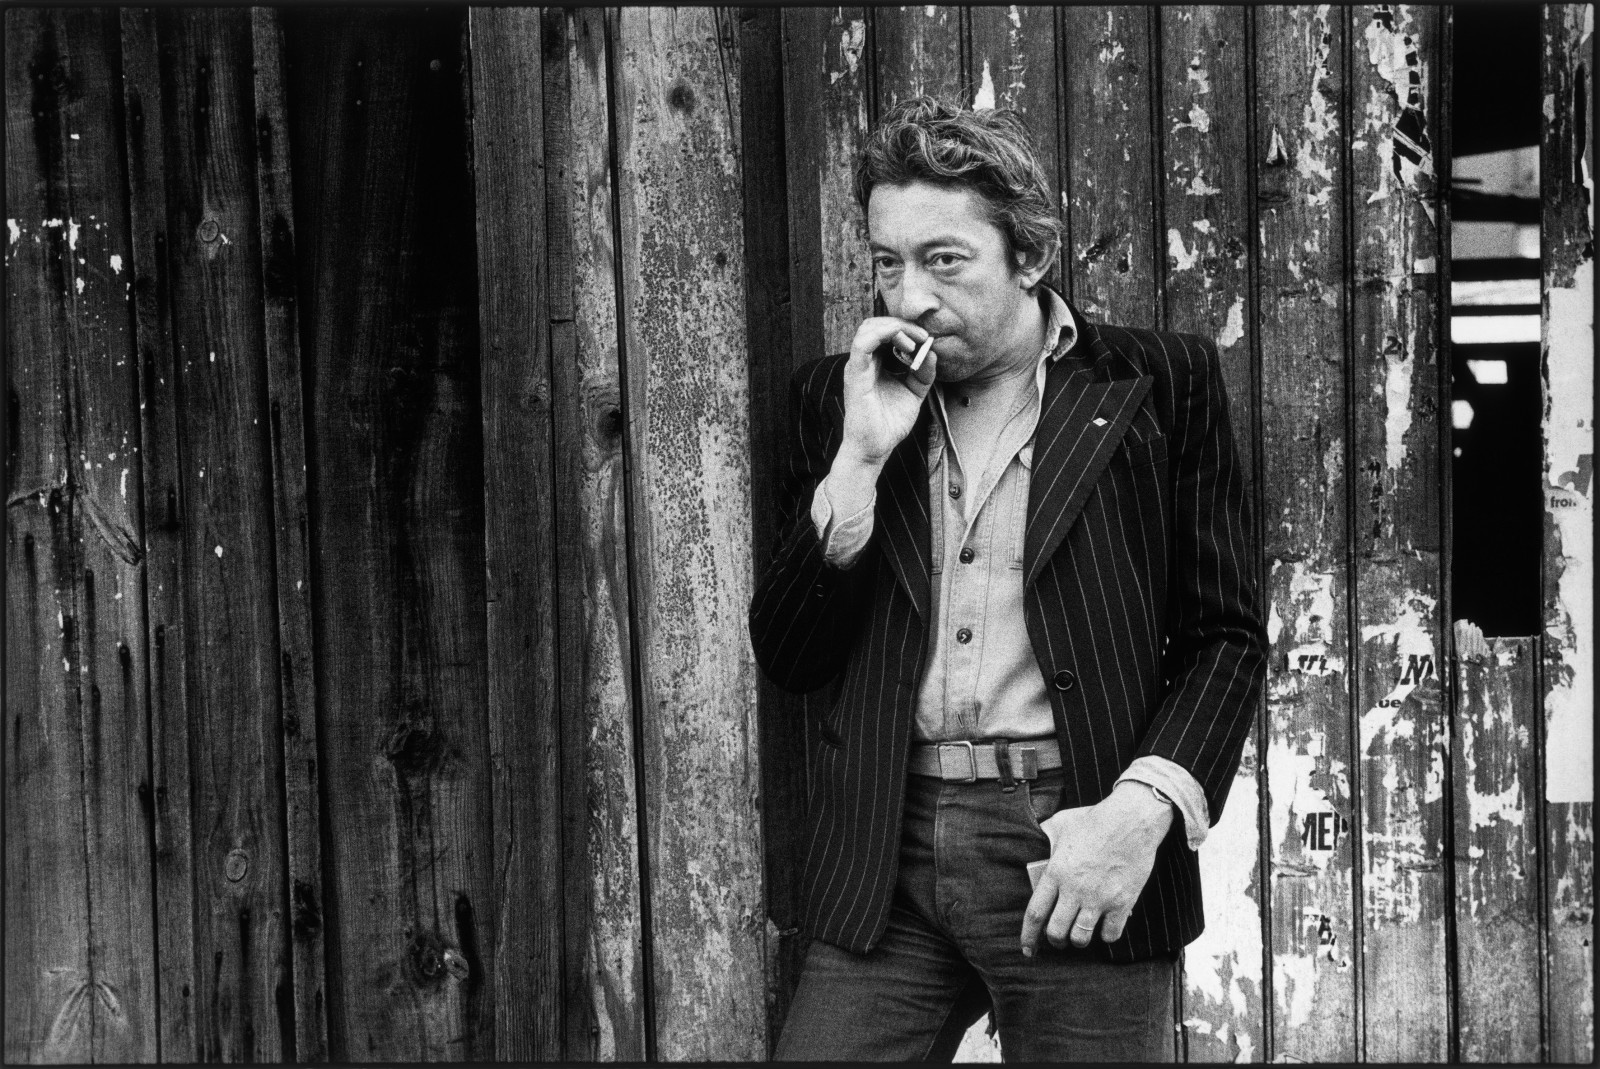 Paris, 1978 Serge Gainsbourg © Tony Frank